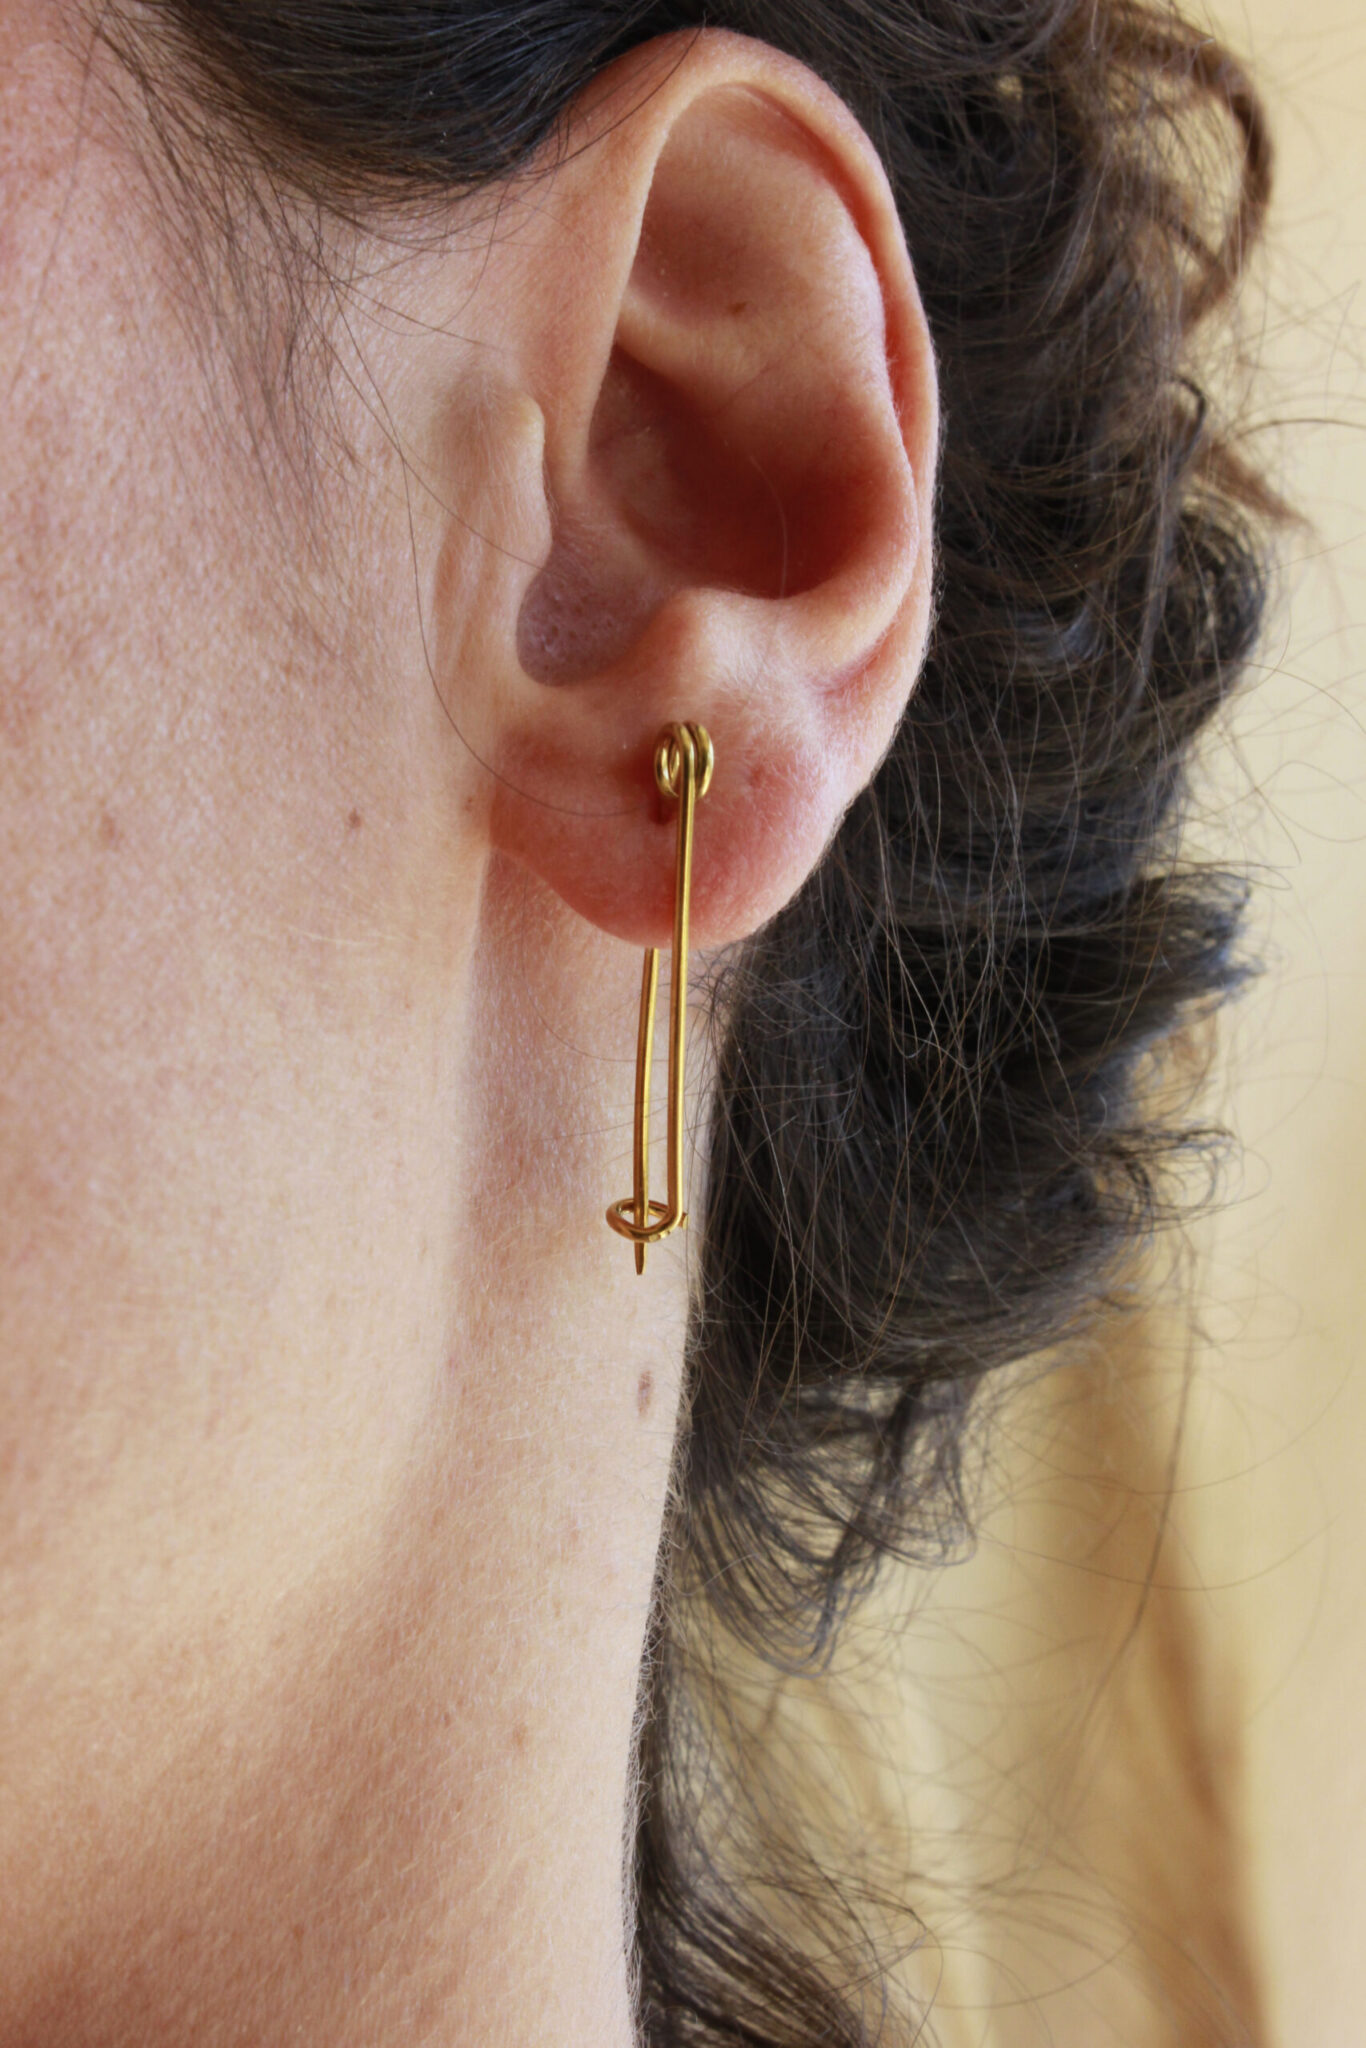 Gold safety pins earrings